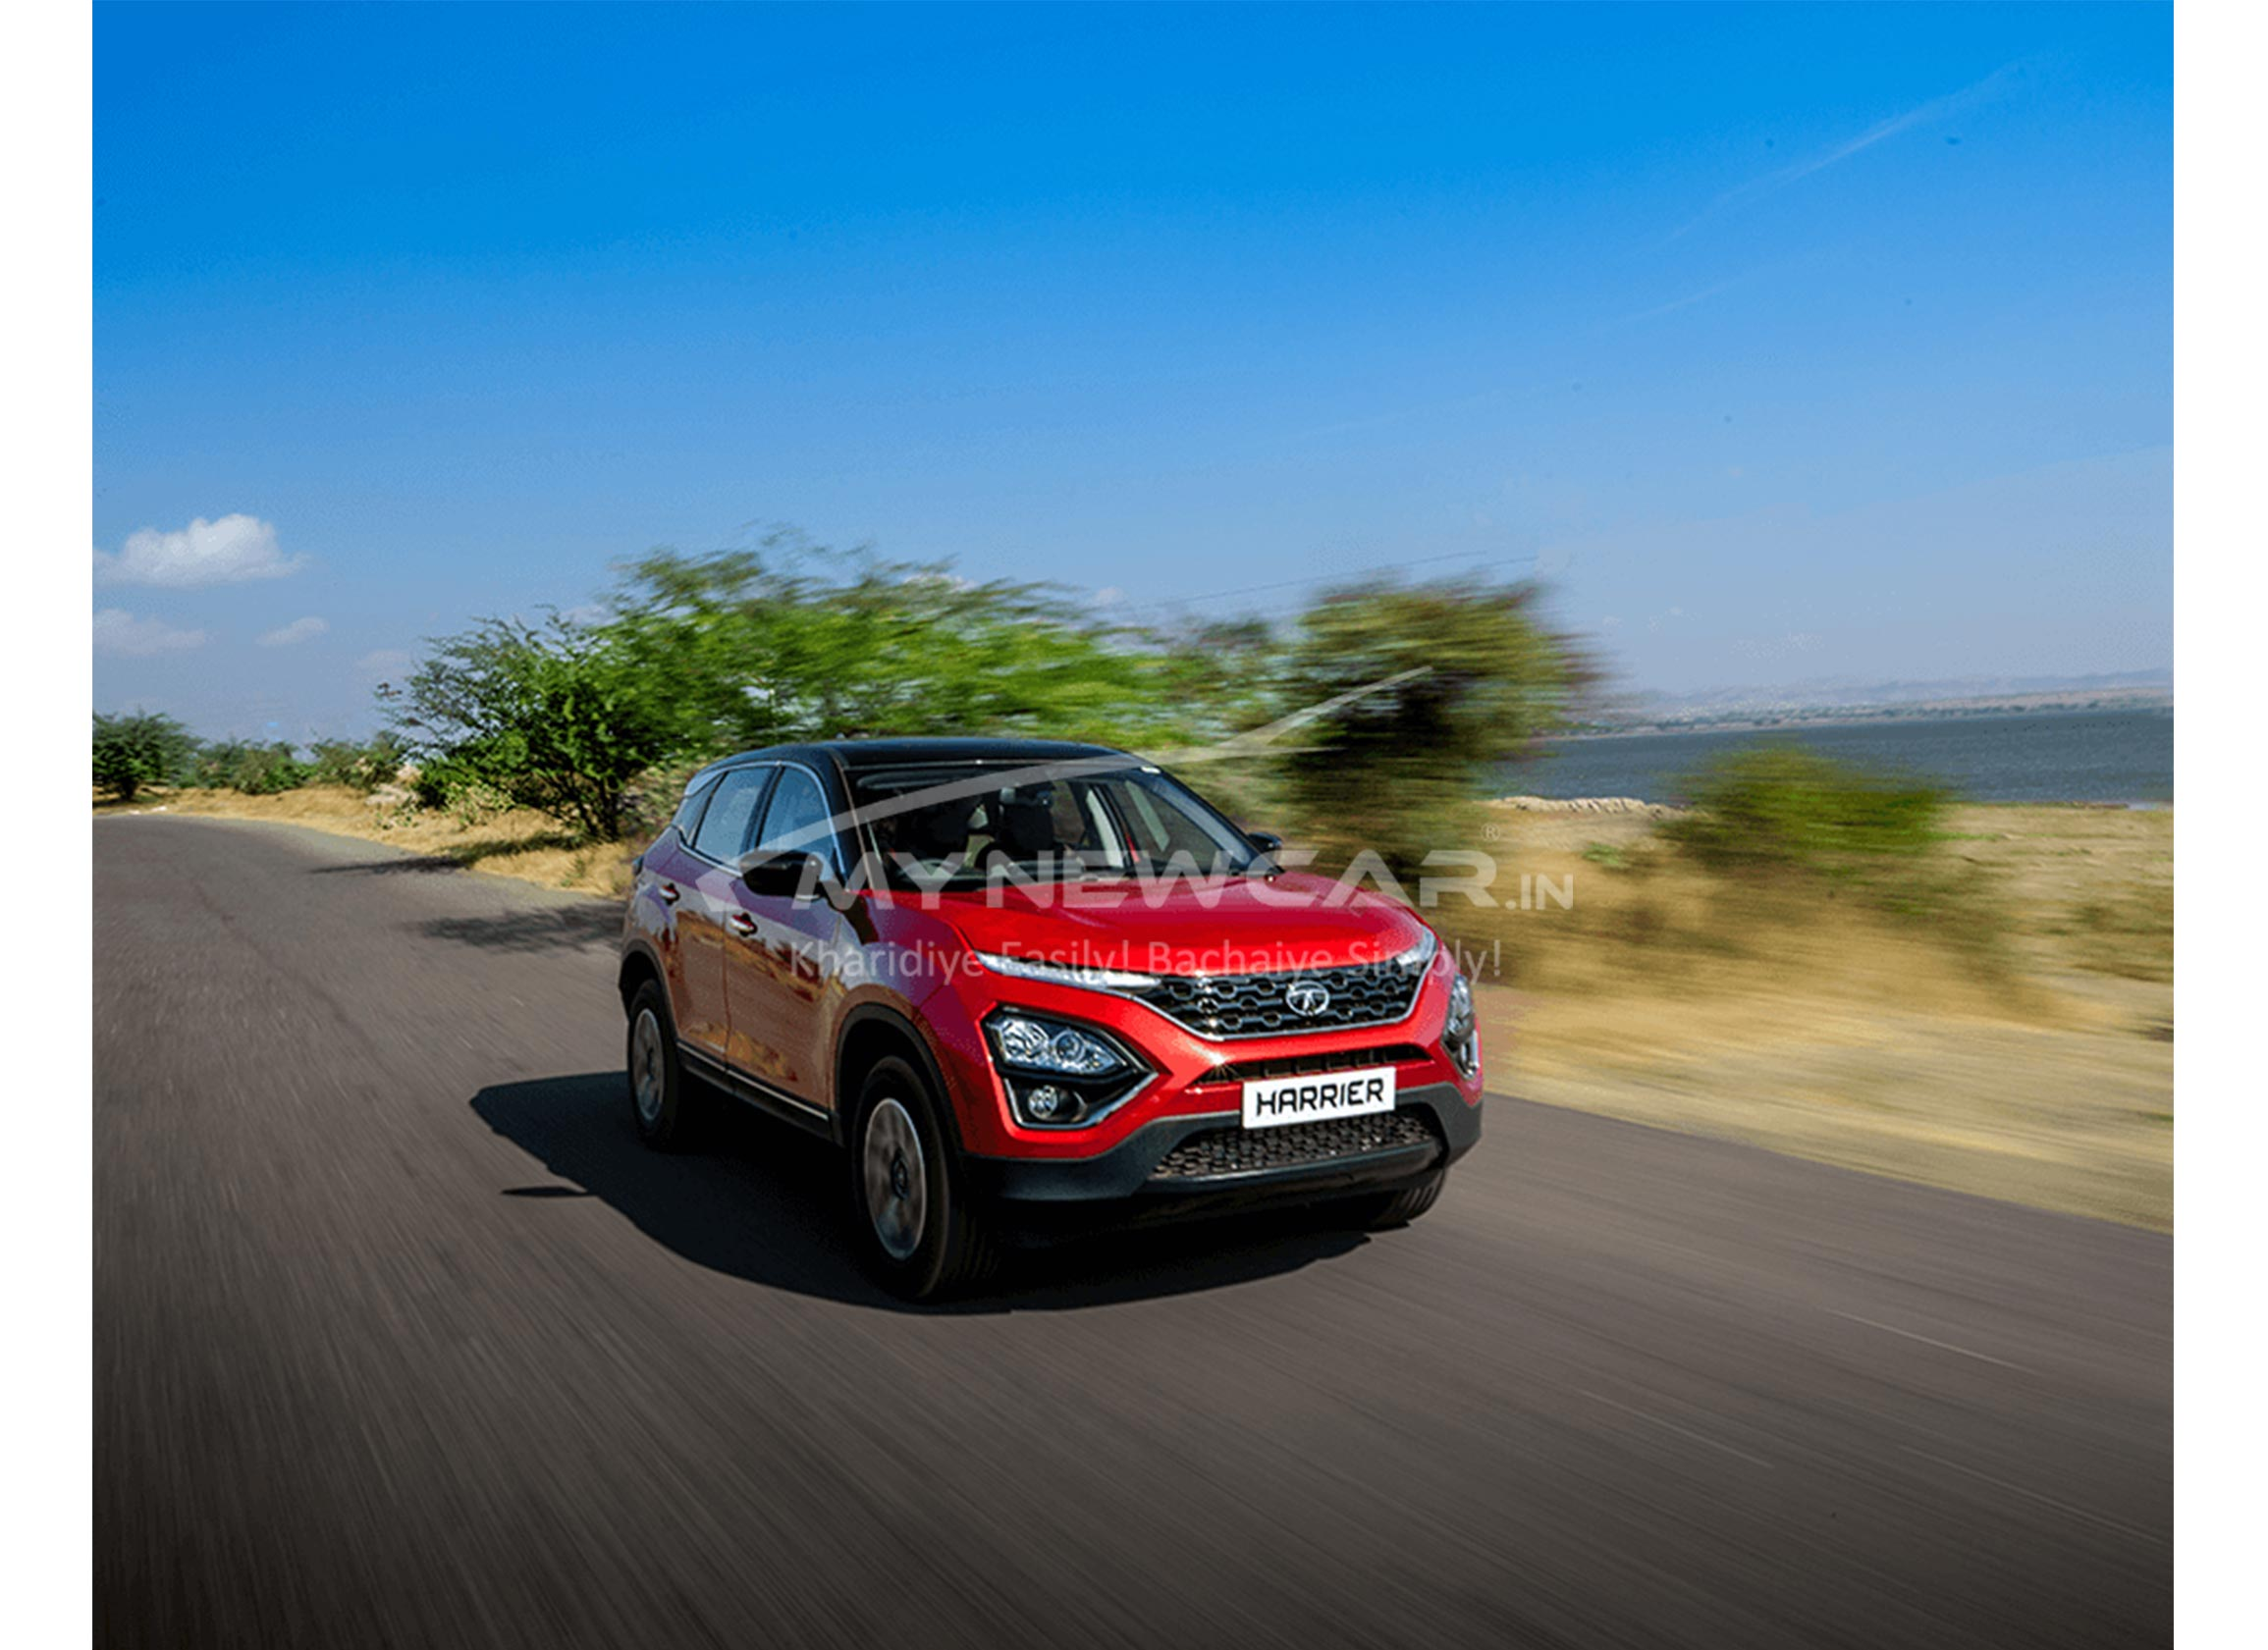 tata harrier b6 automatic car front image